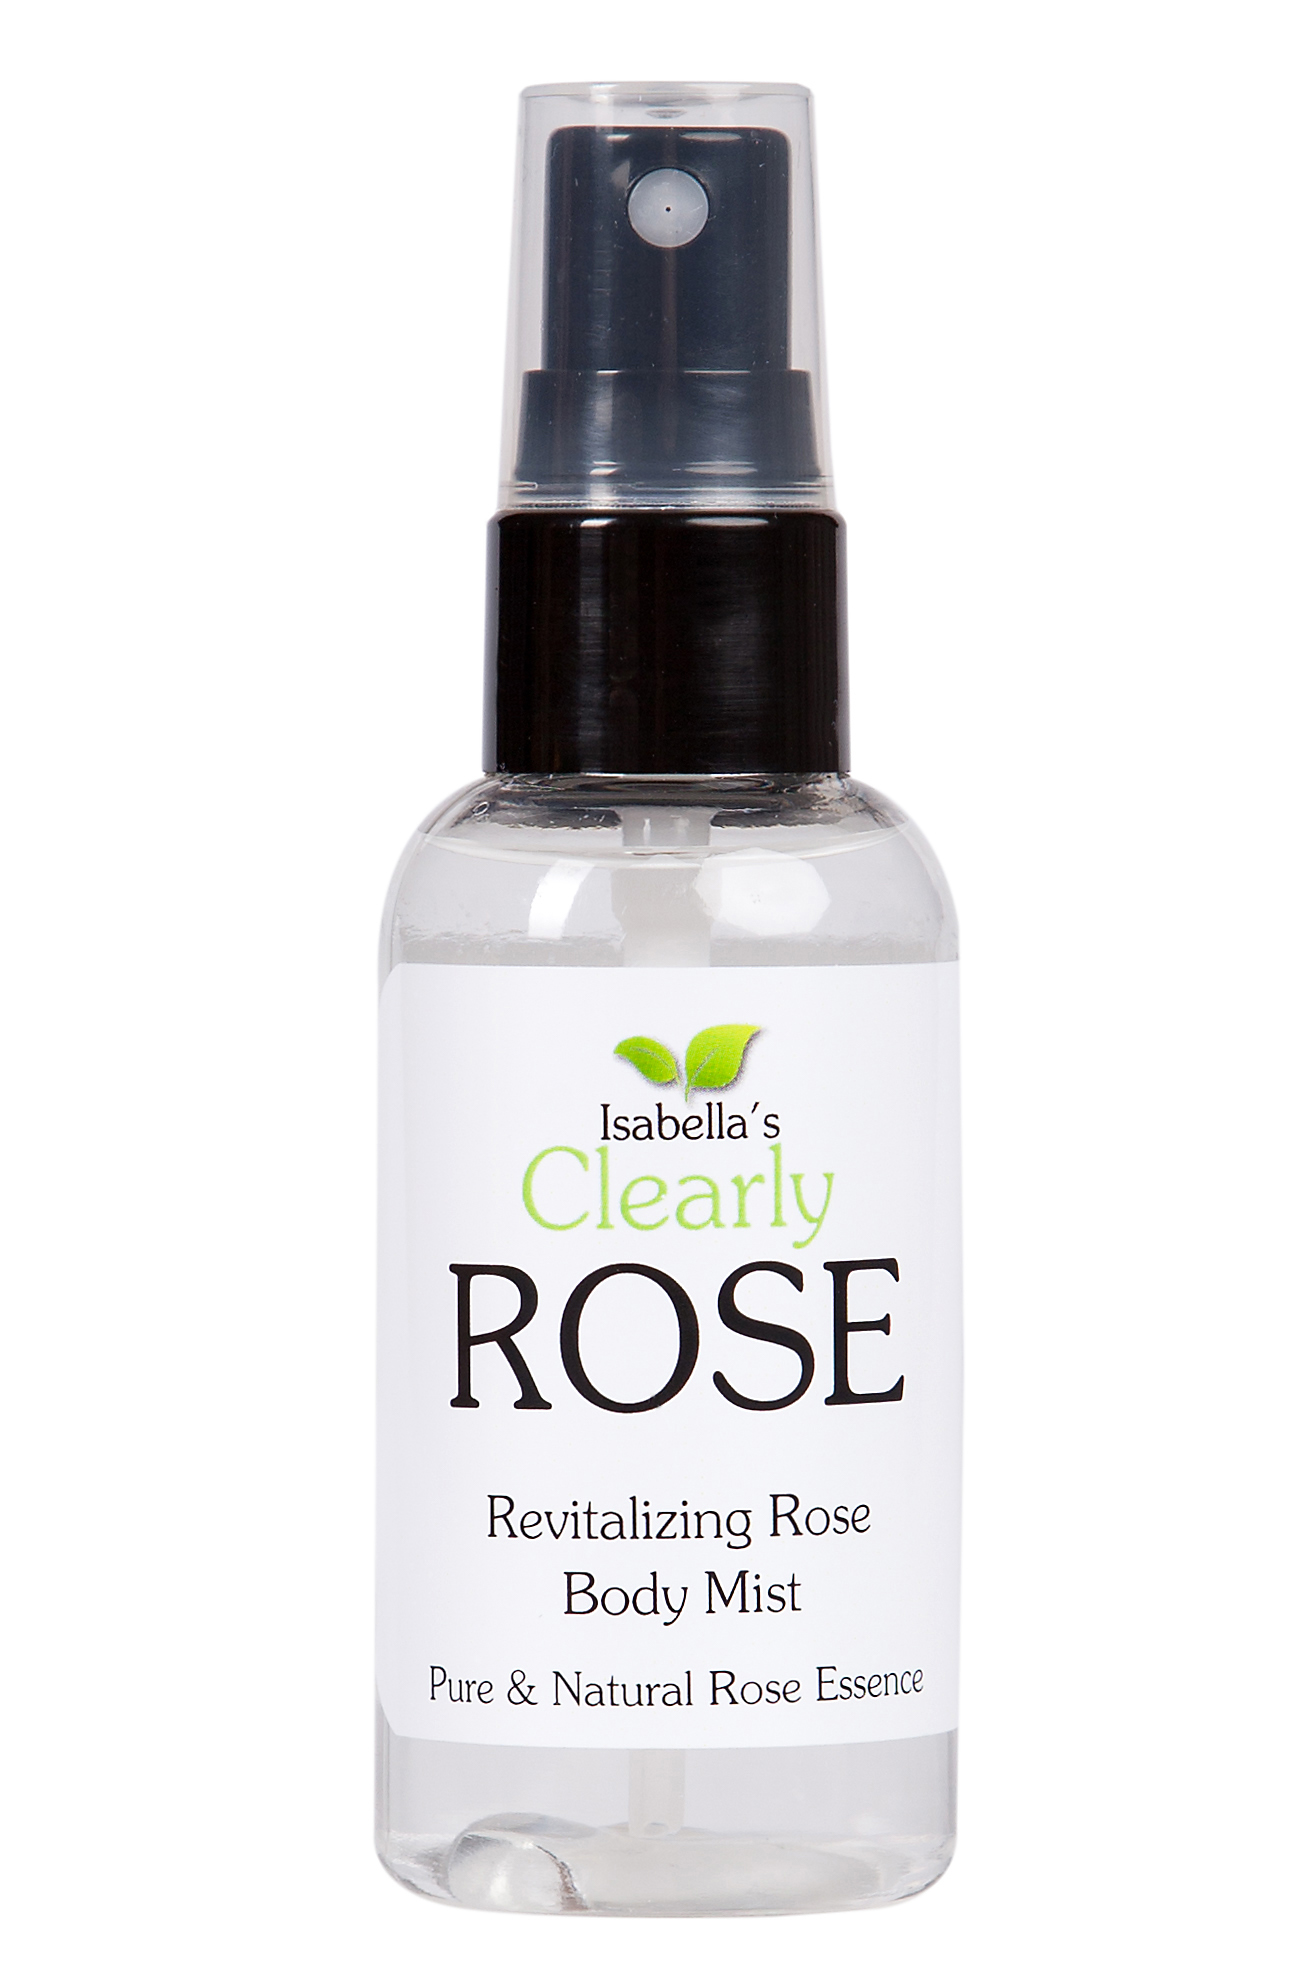 Isabella's Clearly ROSE